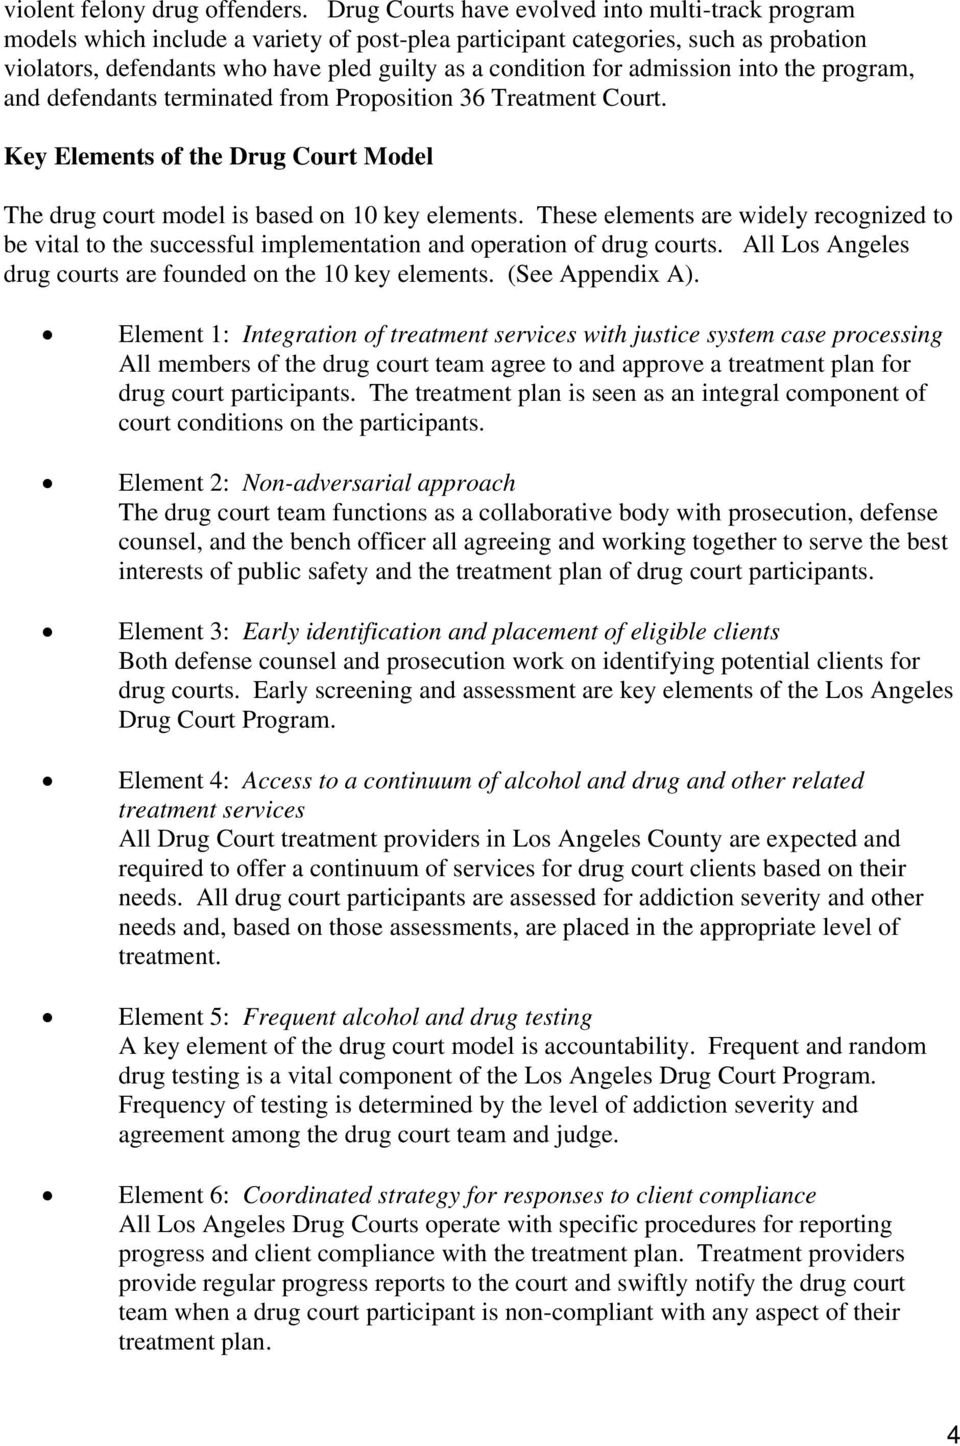 admission into the program, and defendants terminated from Proposition 36 Treatment Court. Key Elements of the Drug Court Model The drug court model is based on 10 key elements.